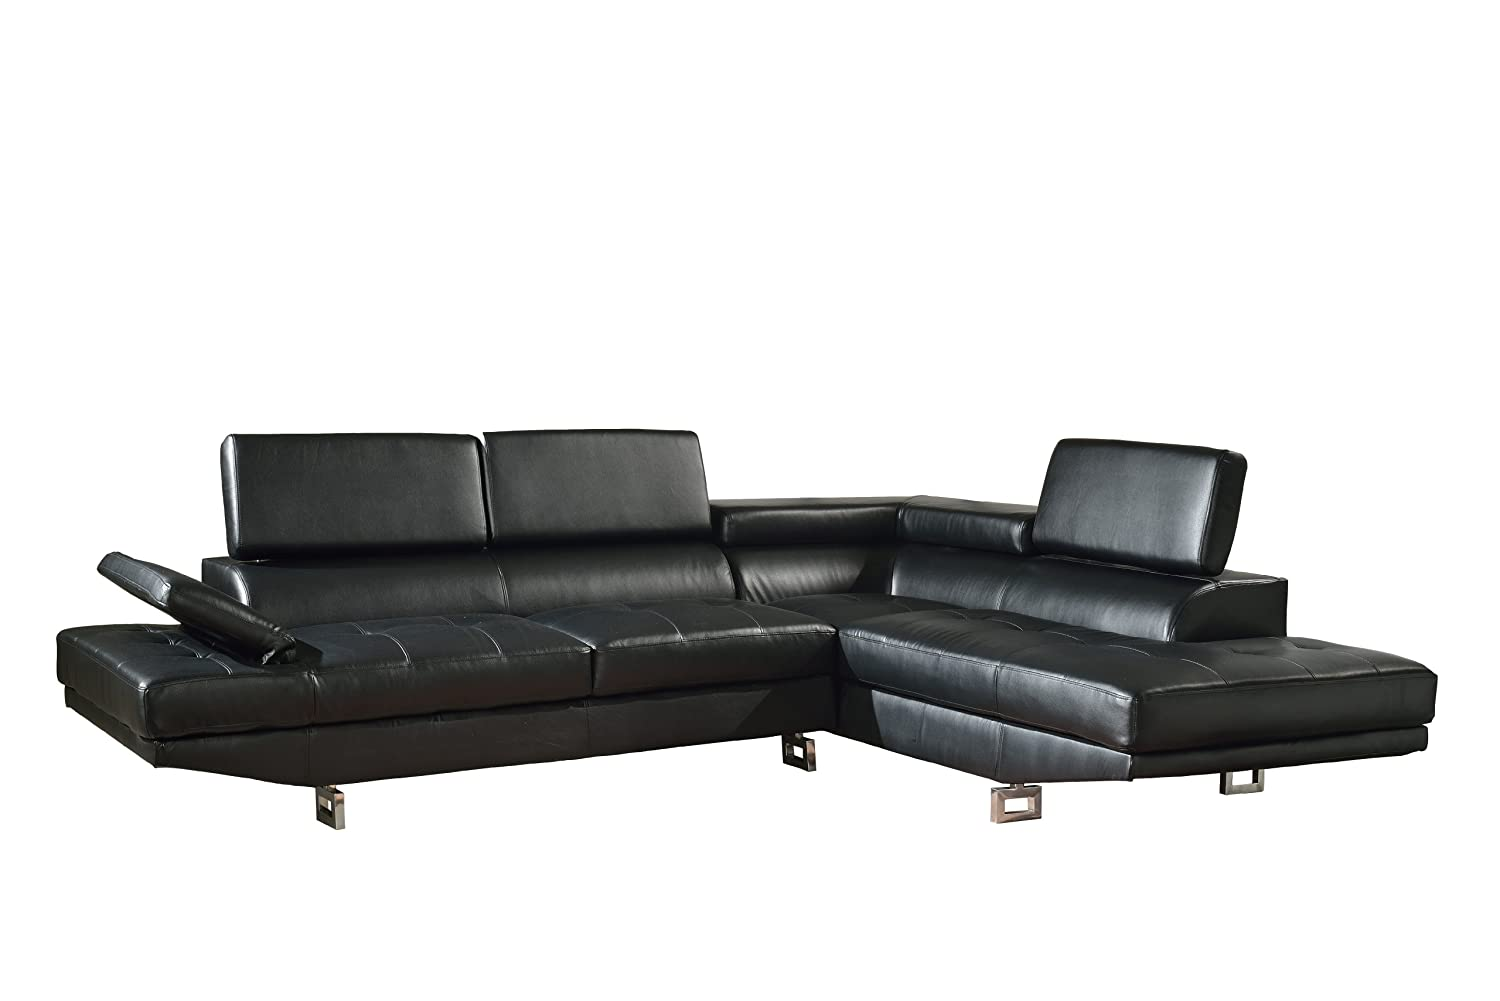 Beverly Furniture Diana Bonded Leather 2-Piece Contemporary Sectional Sofa Set - Black